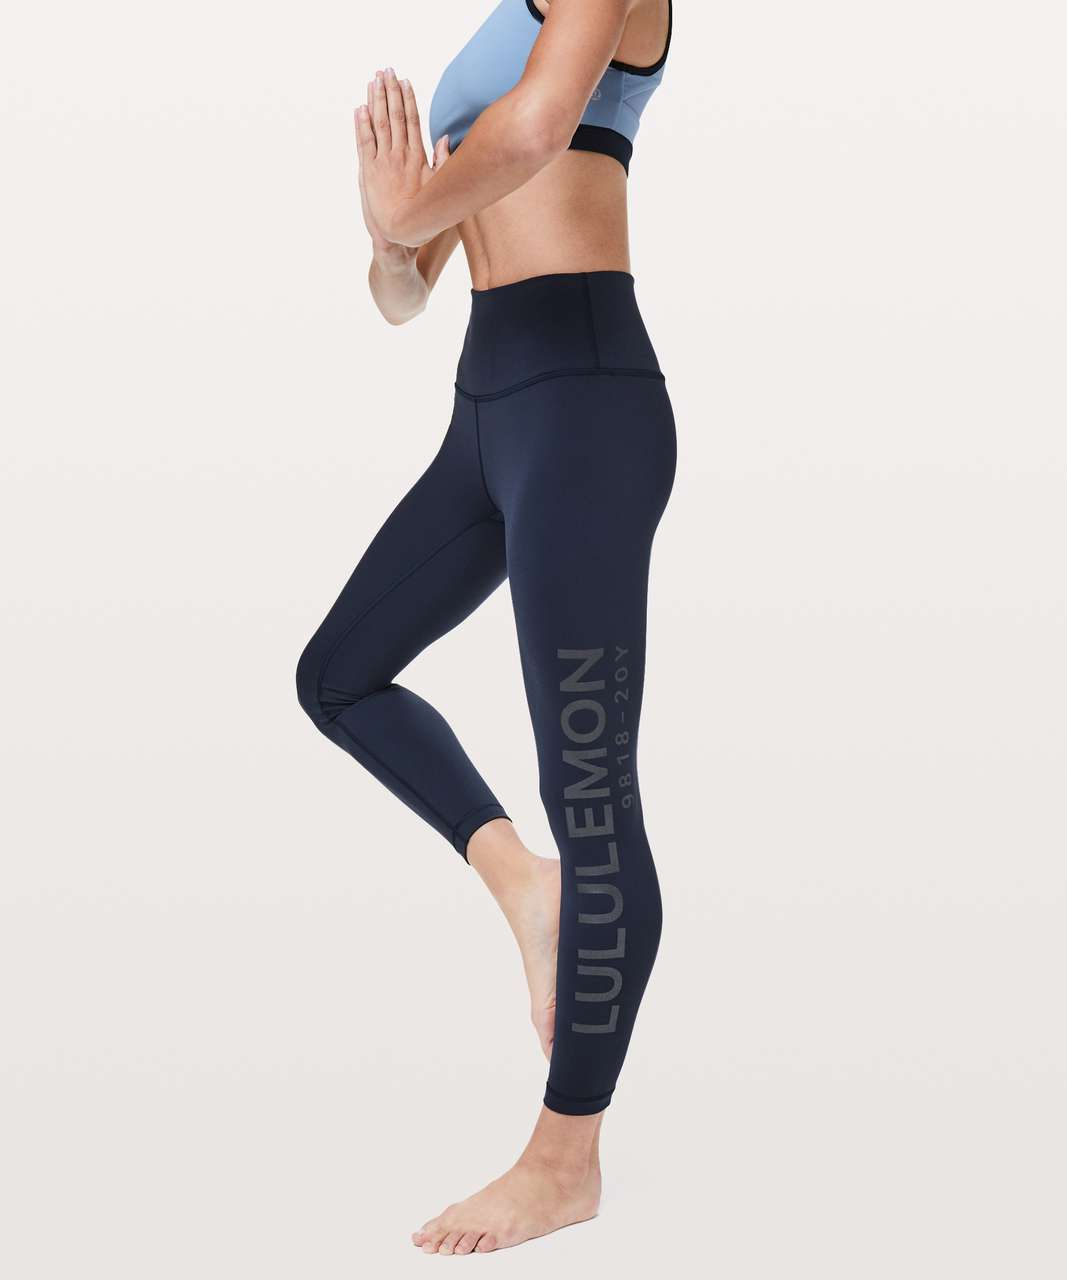 "Lululemon Wunder Under Hi-Rise 7/8 Tight *20Y Collection 25"" - True Navy"